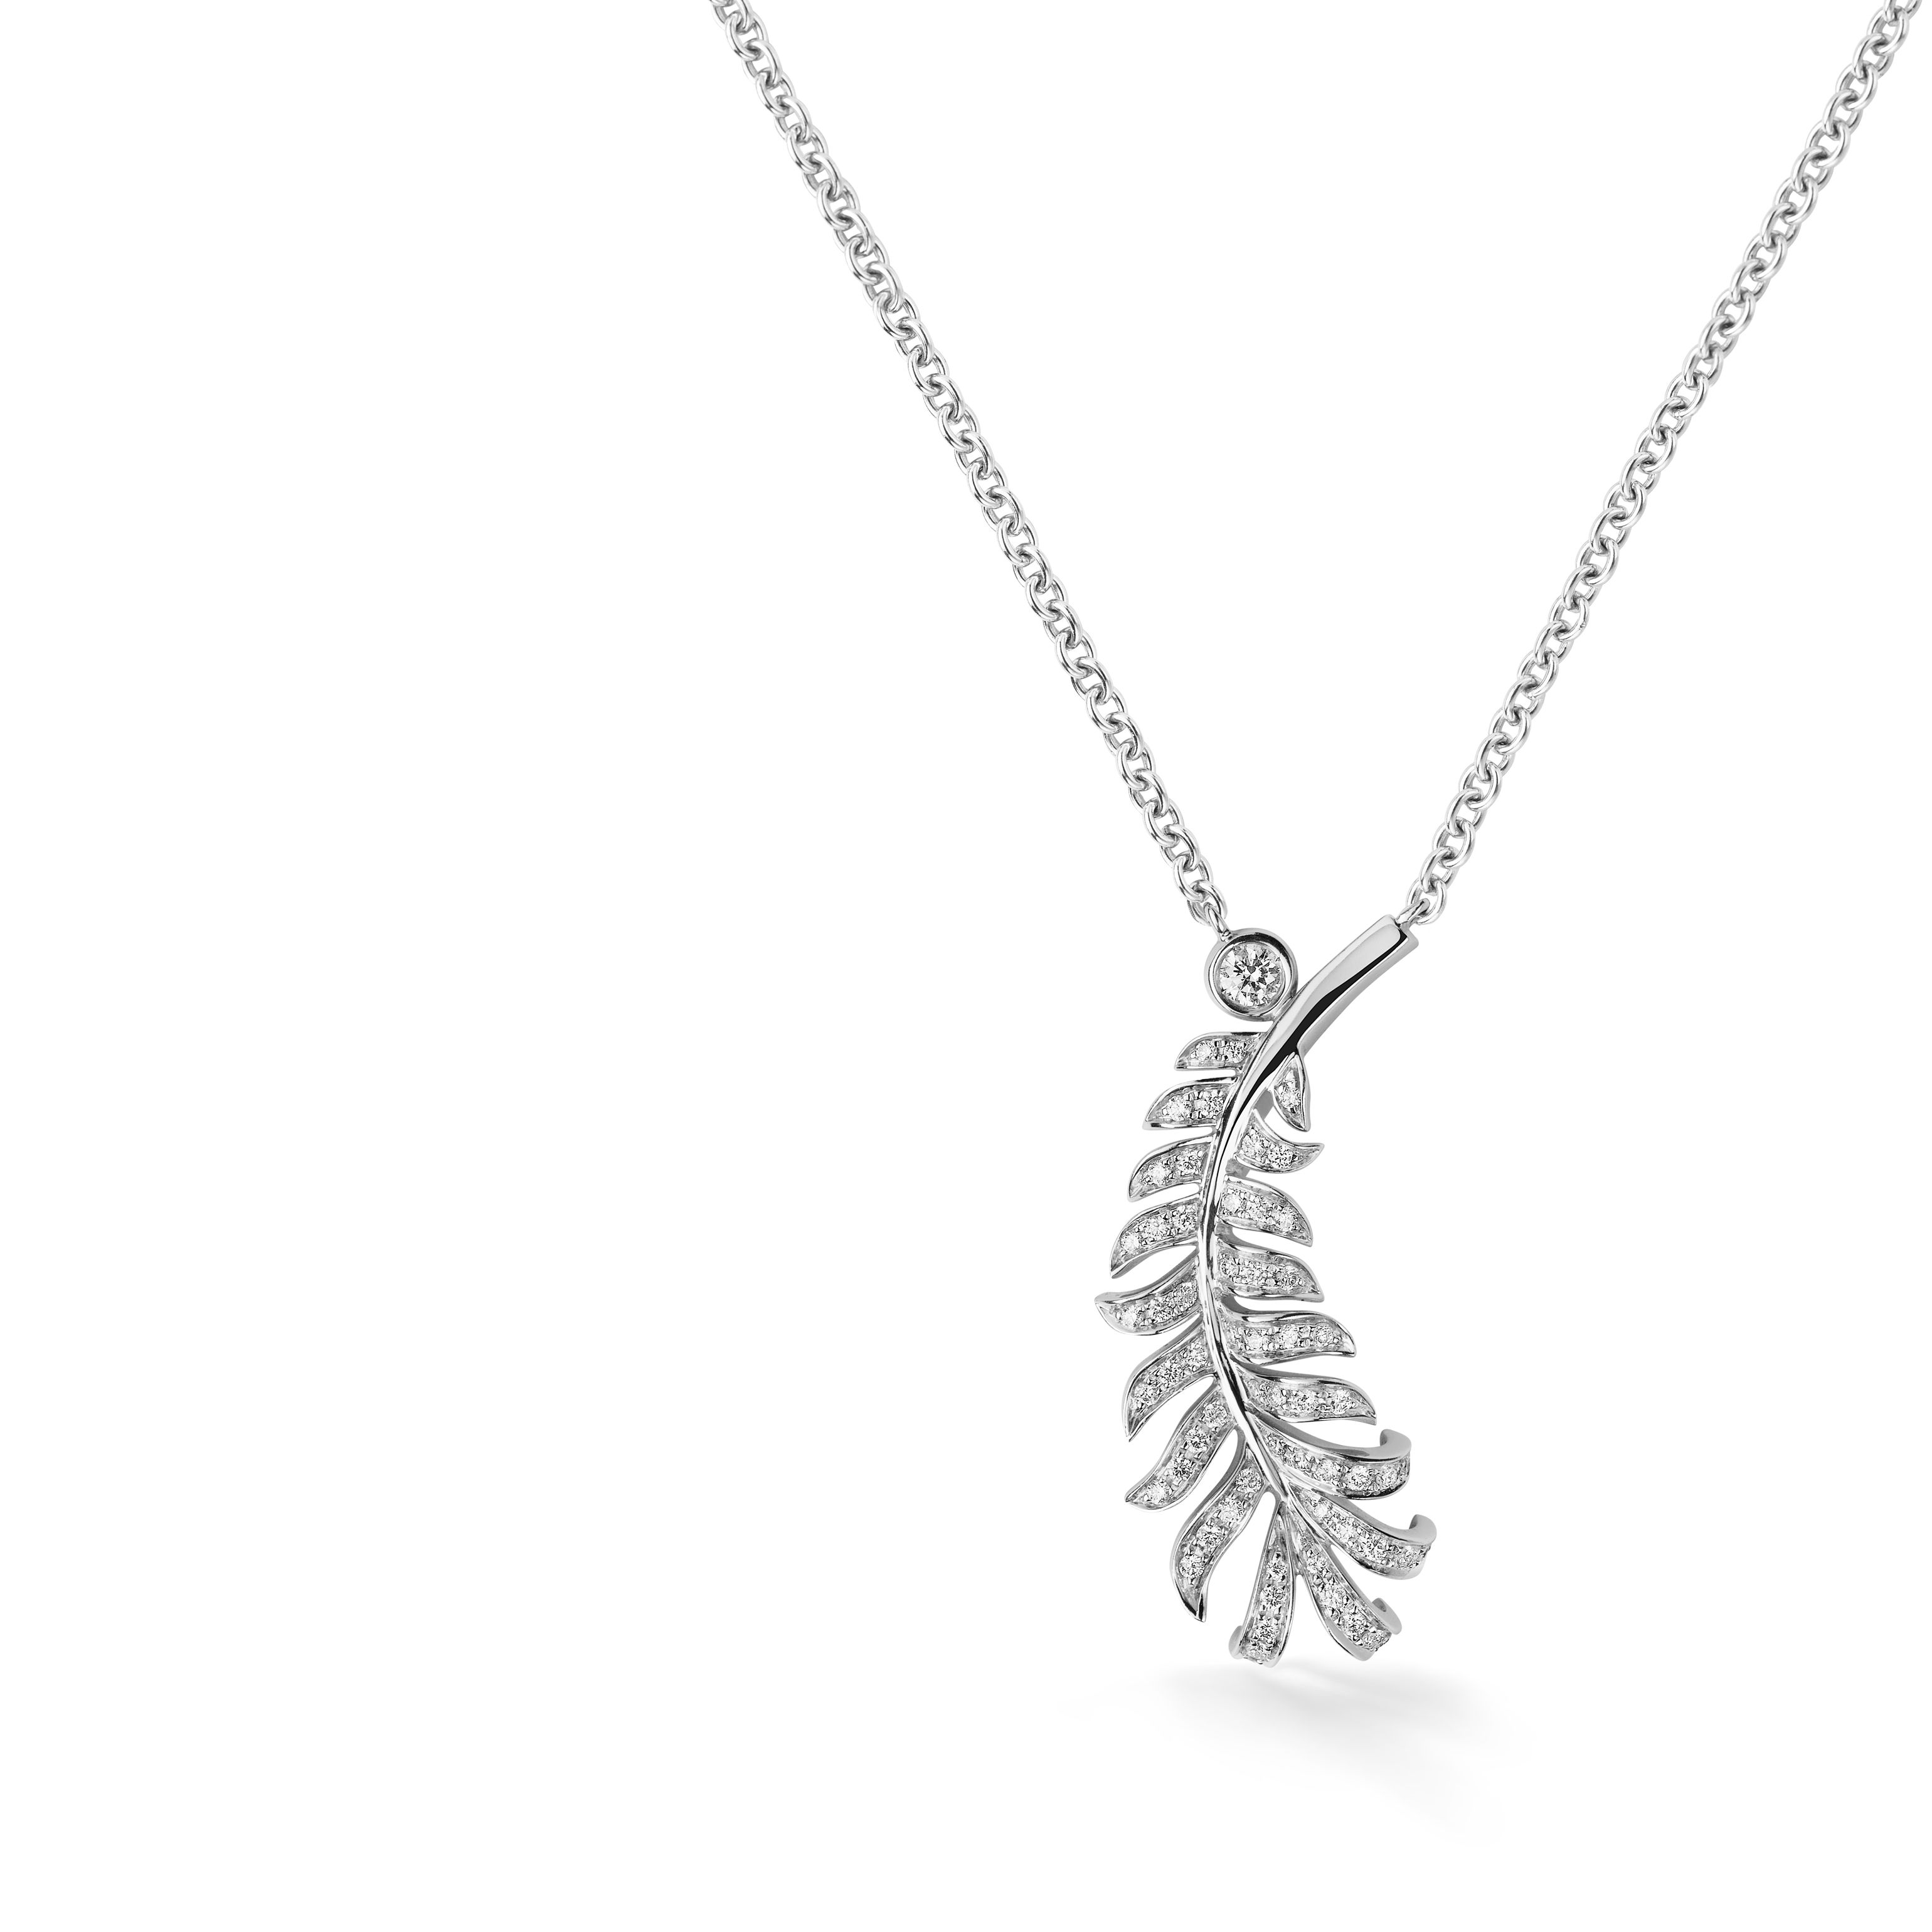 chanel necklace. name: plume de chanel necklace; reference: j4142; collection: chanel; category: necklaces; materials: white golddiamond chanel necklace